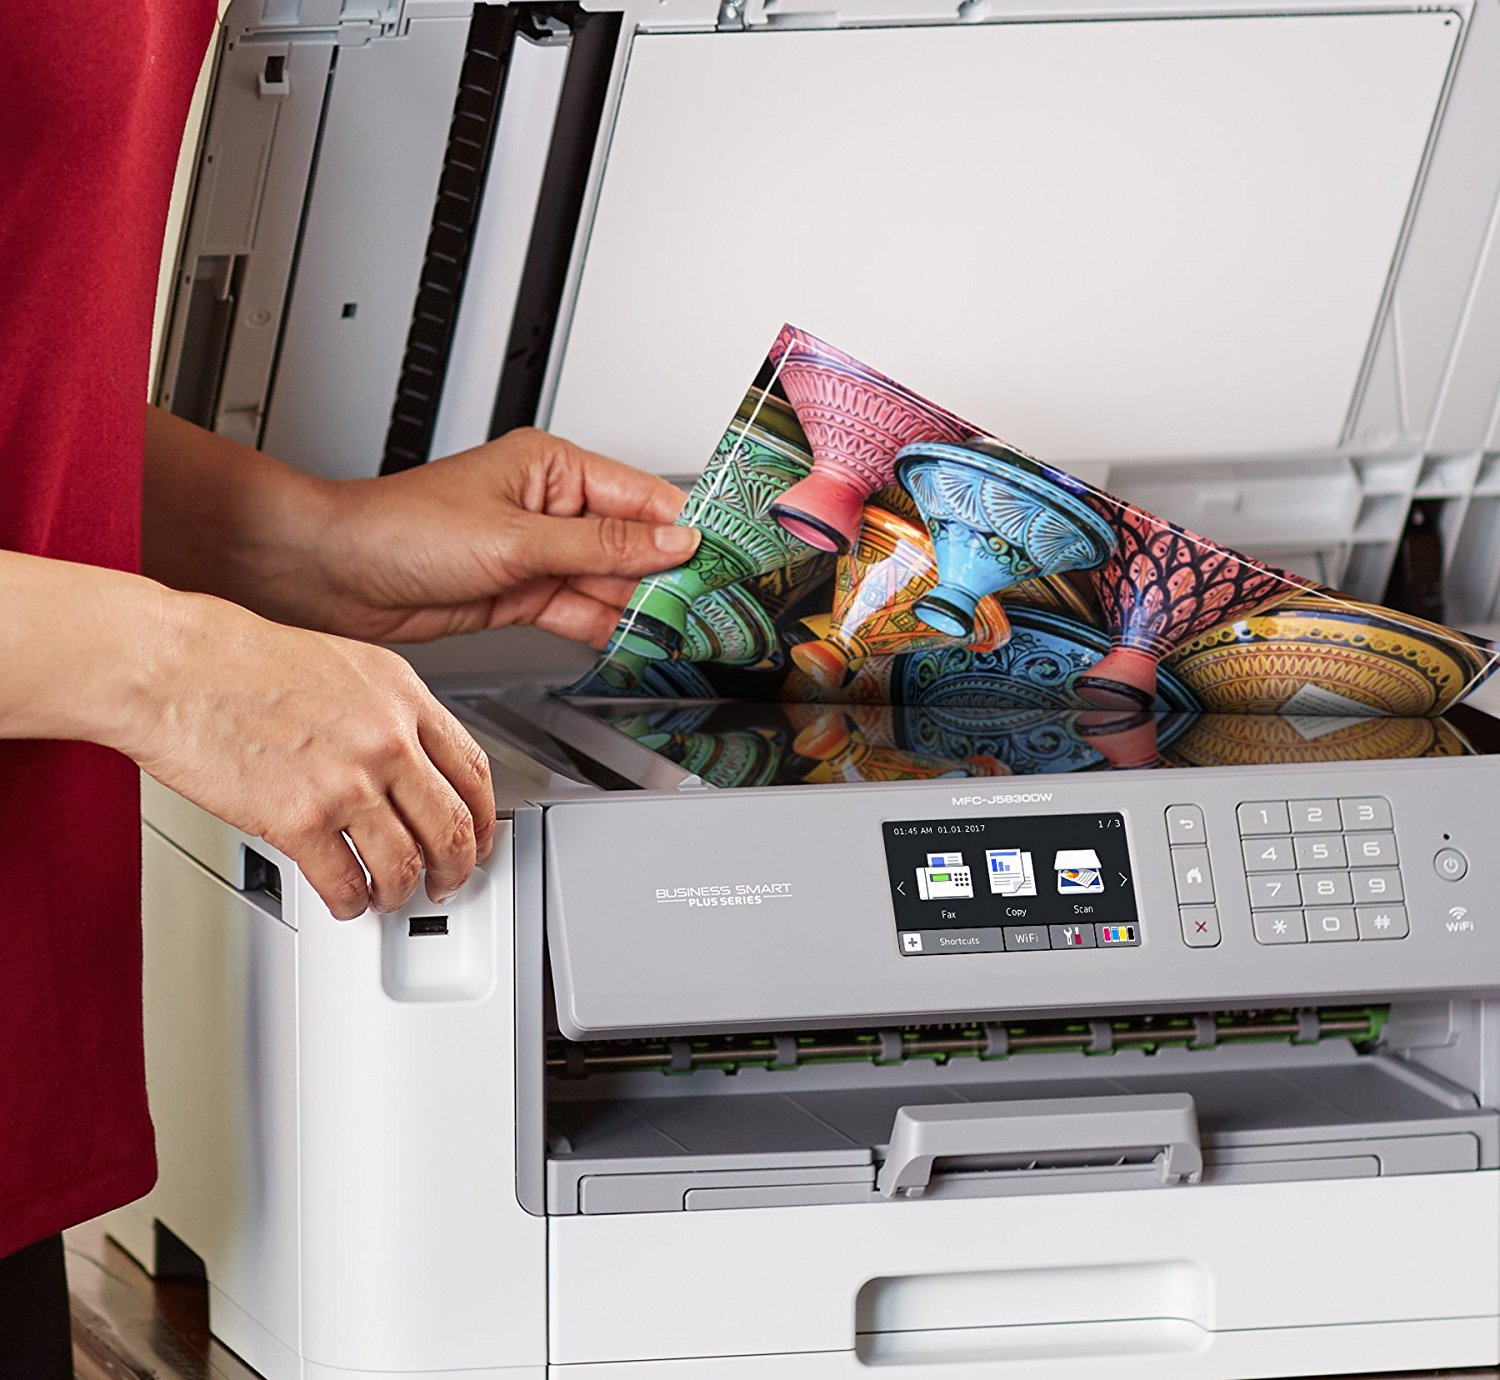 brother mfcj6535dw inkjet all in one color printer with